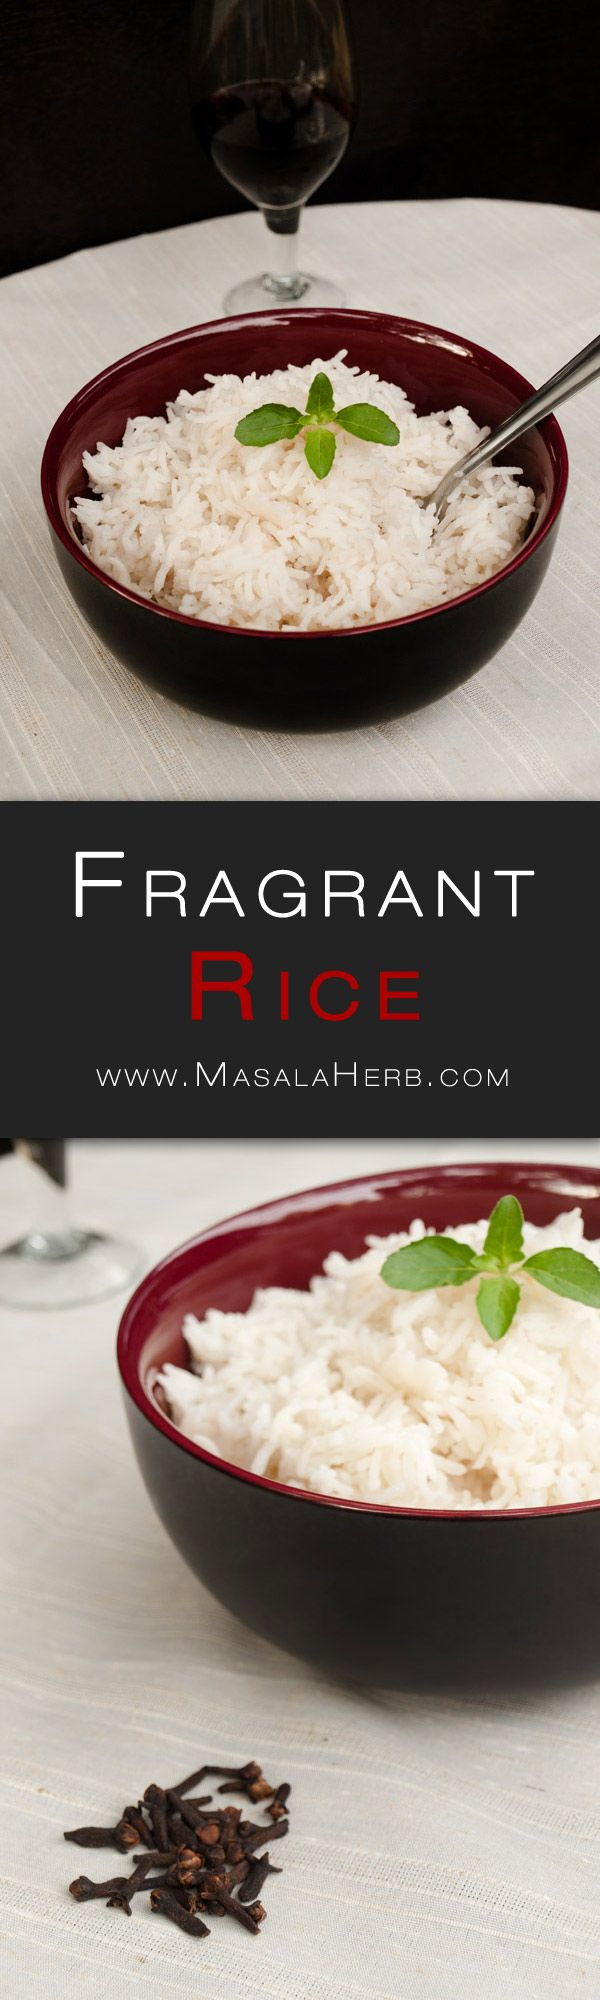 Fragrant Rice Recipe with Clove - Easy Aromatic Rice Side Dish - How to make fragrant rice www.MasalaHerb.com